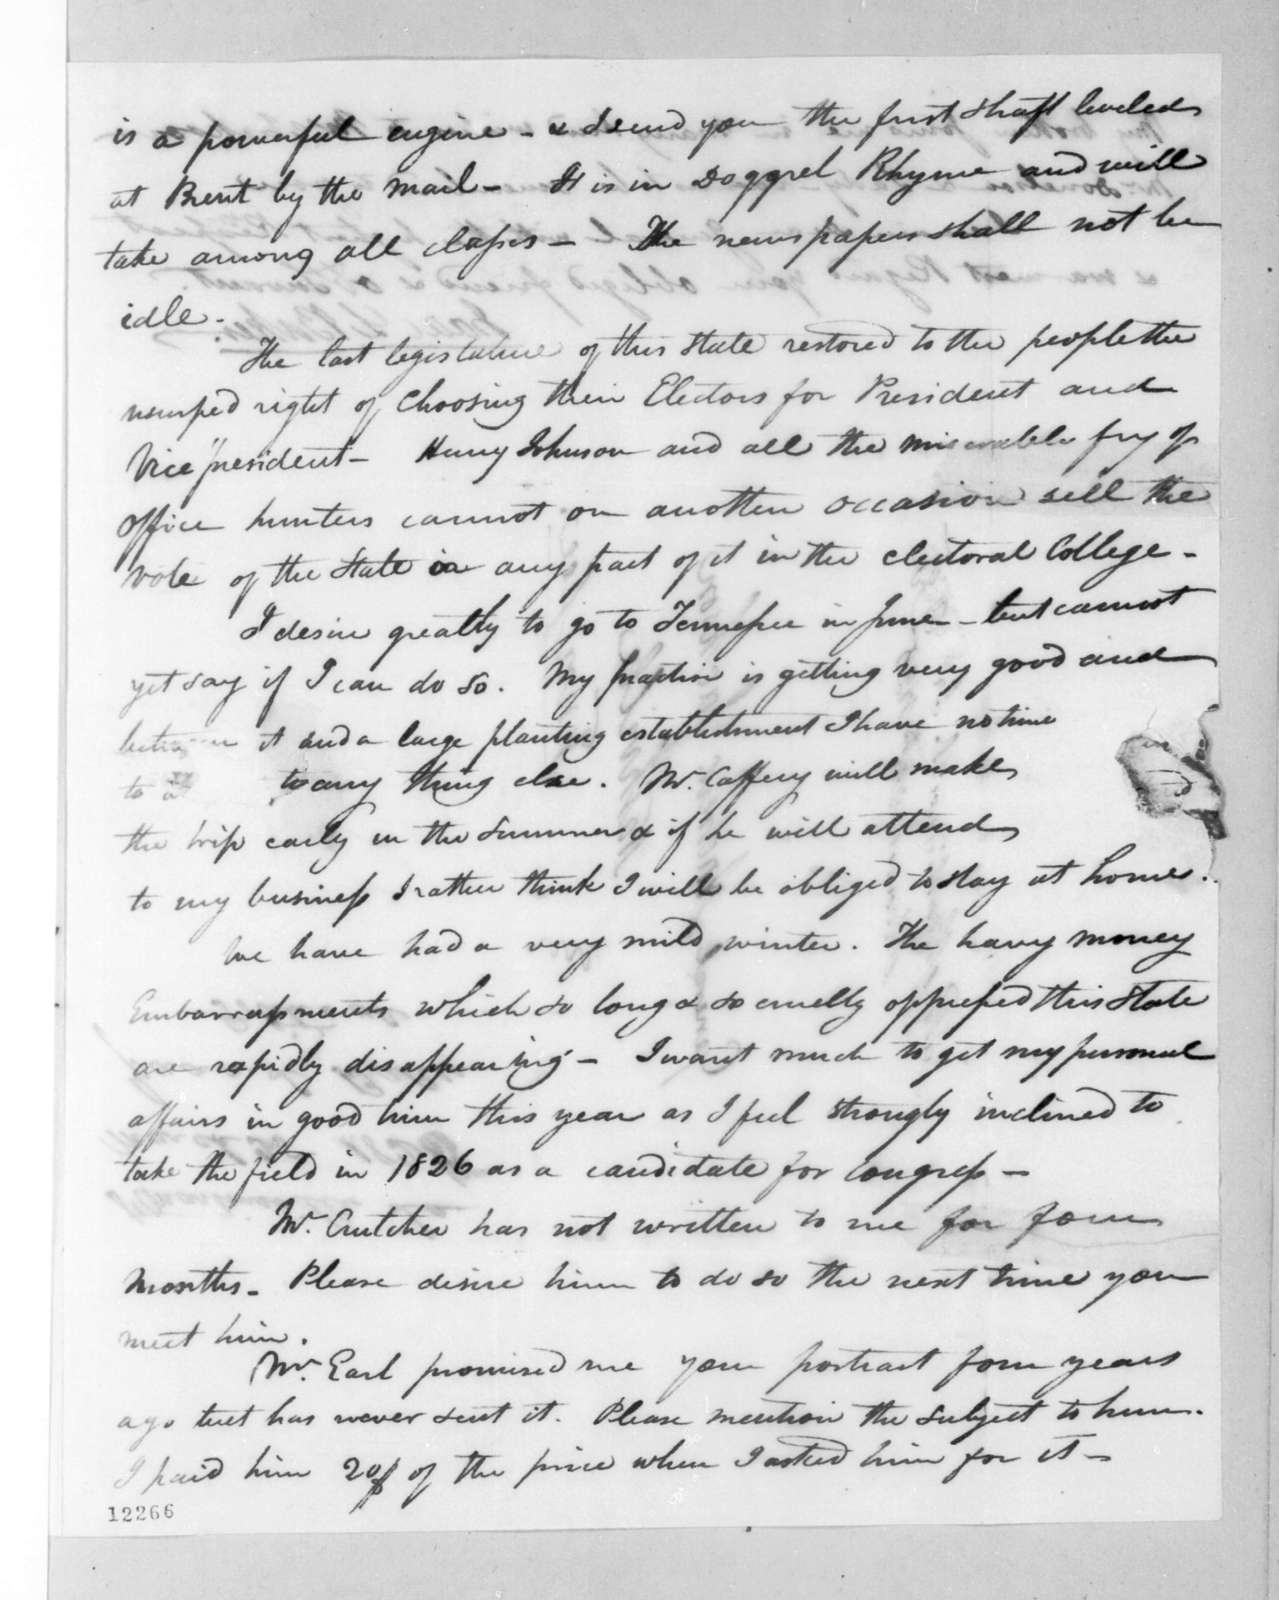 Isaac Lewis Baker to Andrew Jackson, March 21, 1825